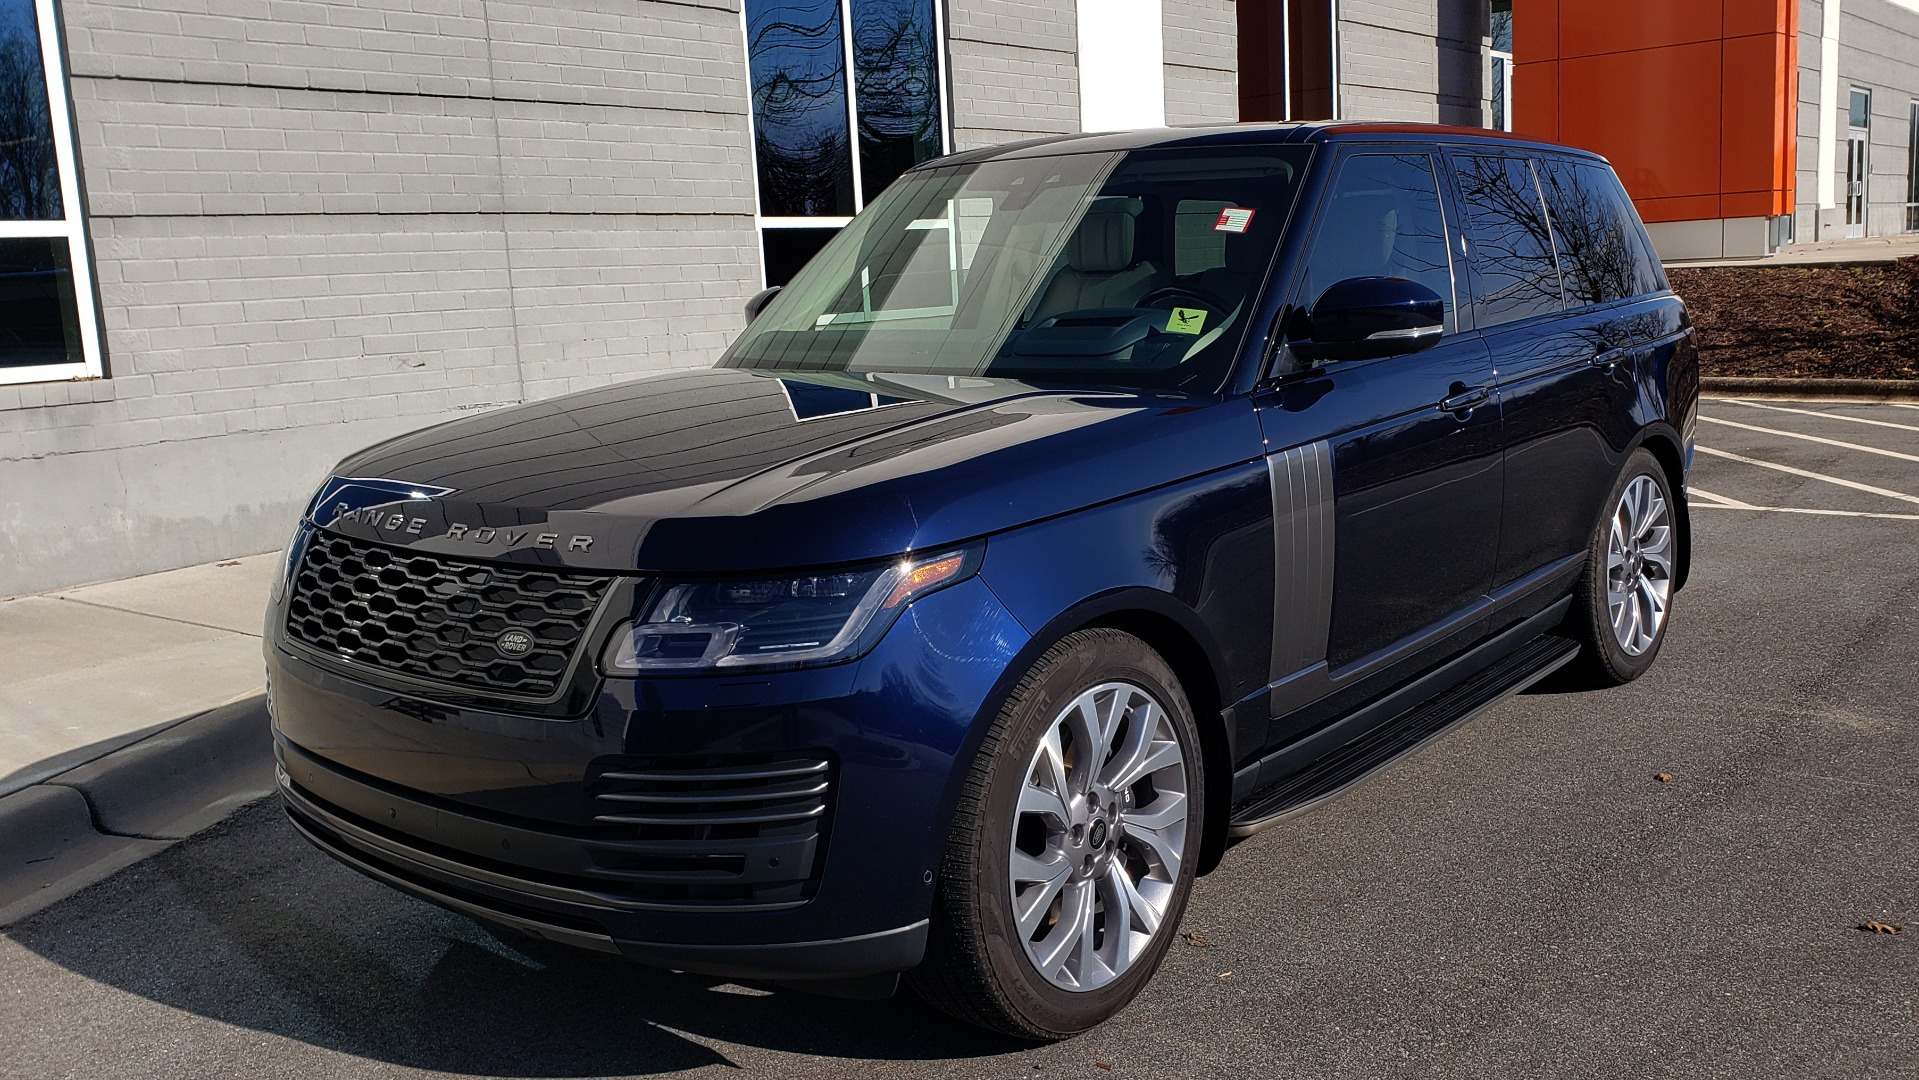 Used 2020 Land Rover RANGE ROVER AUTOBIOGRAPHY HYBRID / NAV / SUNROOF / REARVIEW for sale $110,000 at Formula Imports in Charlotte NC 28227 1